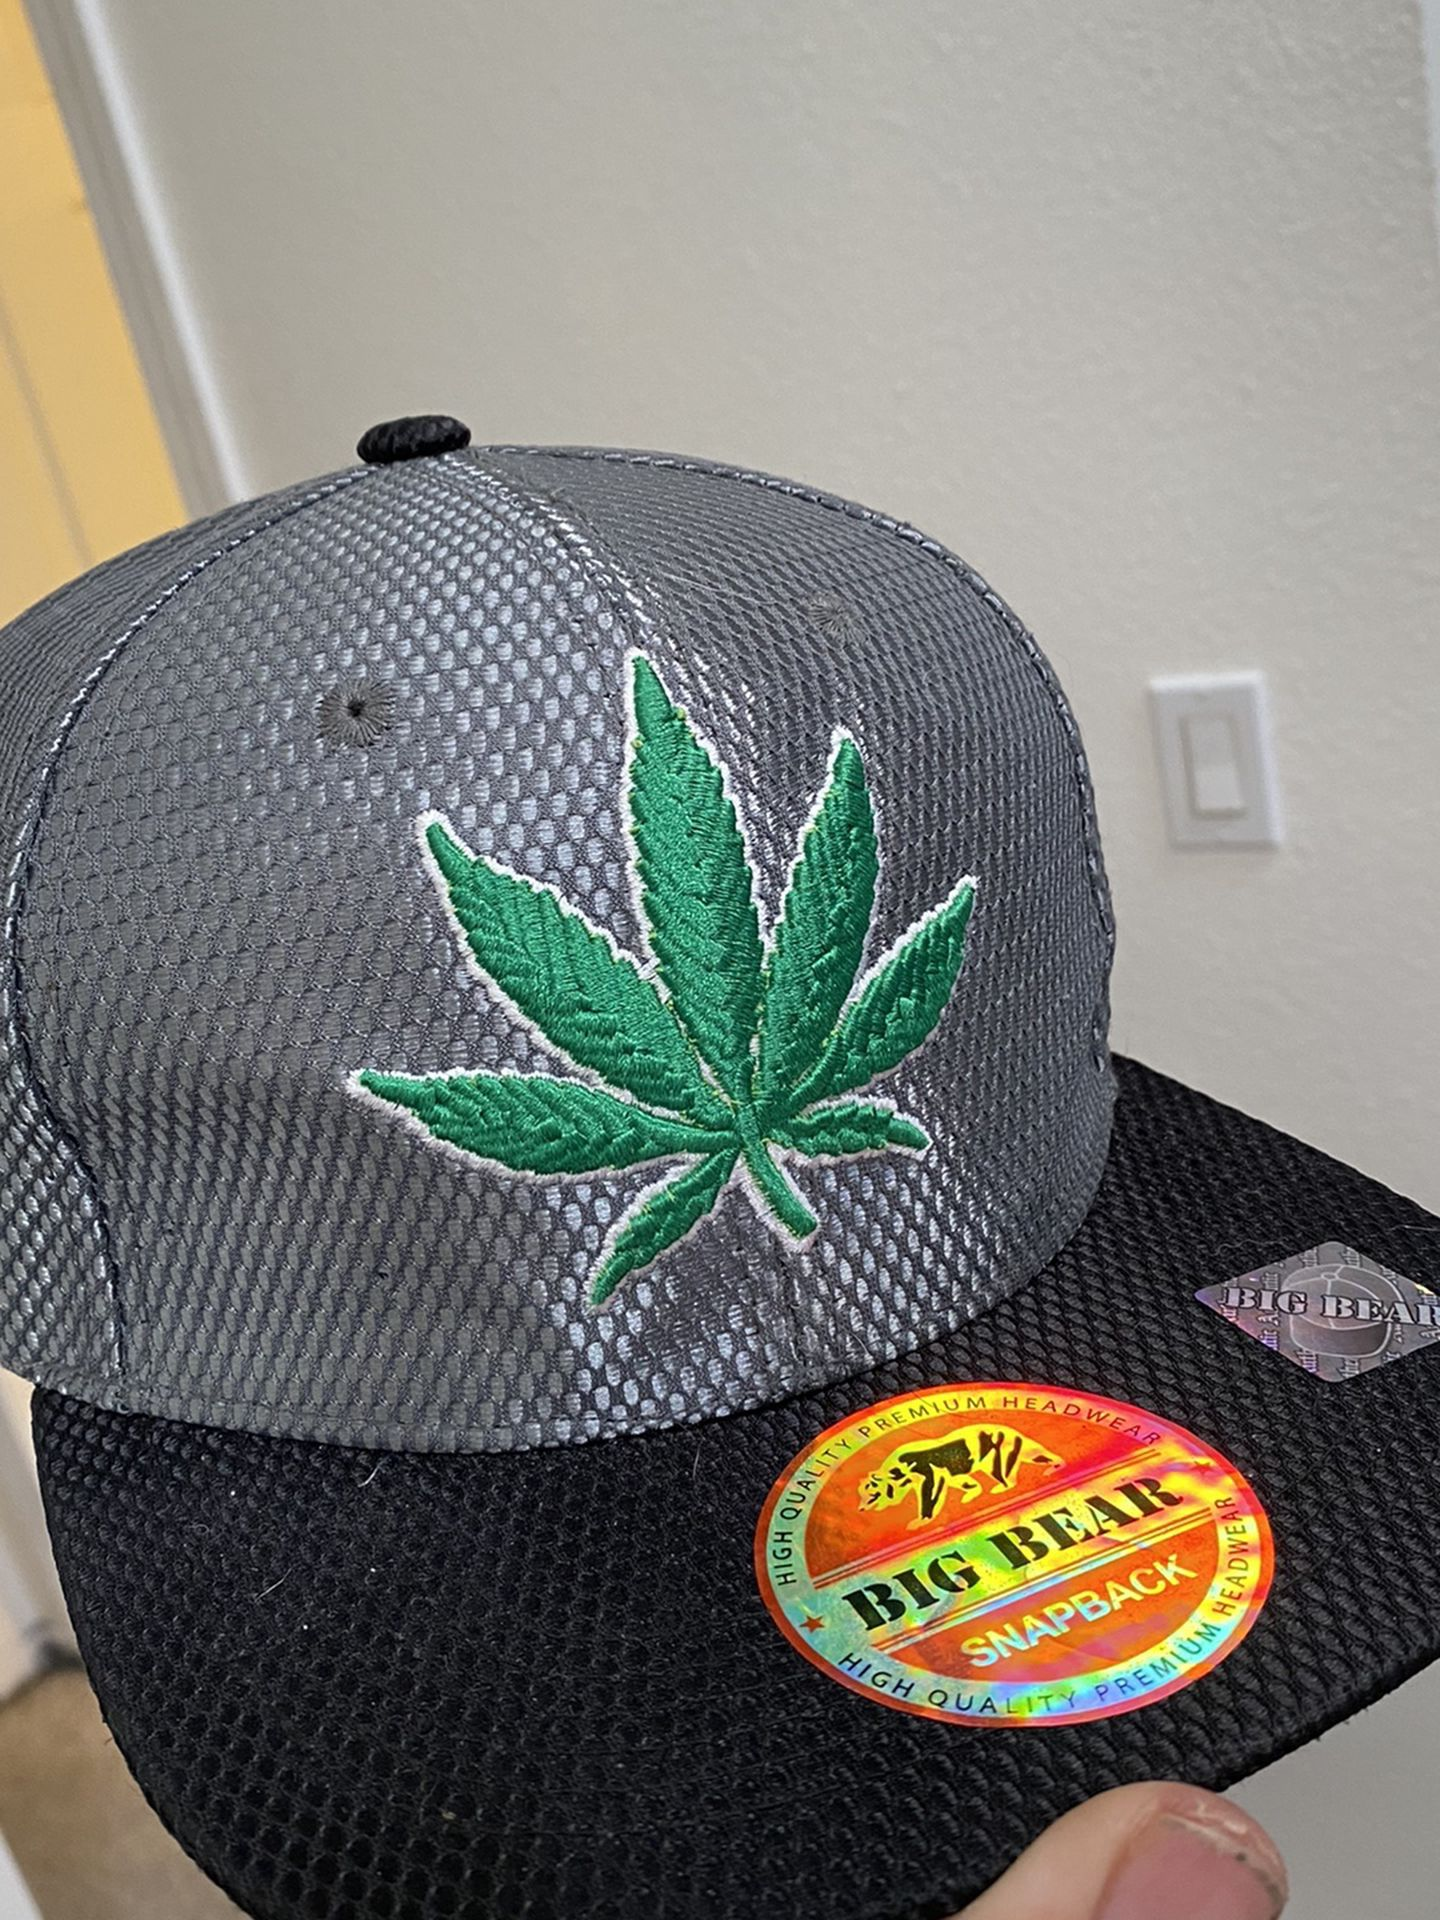 Big Bear Leaf Hat From The 4/20/14 Rally